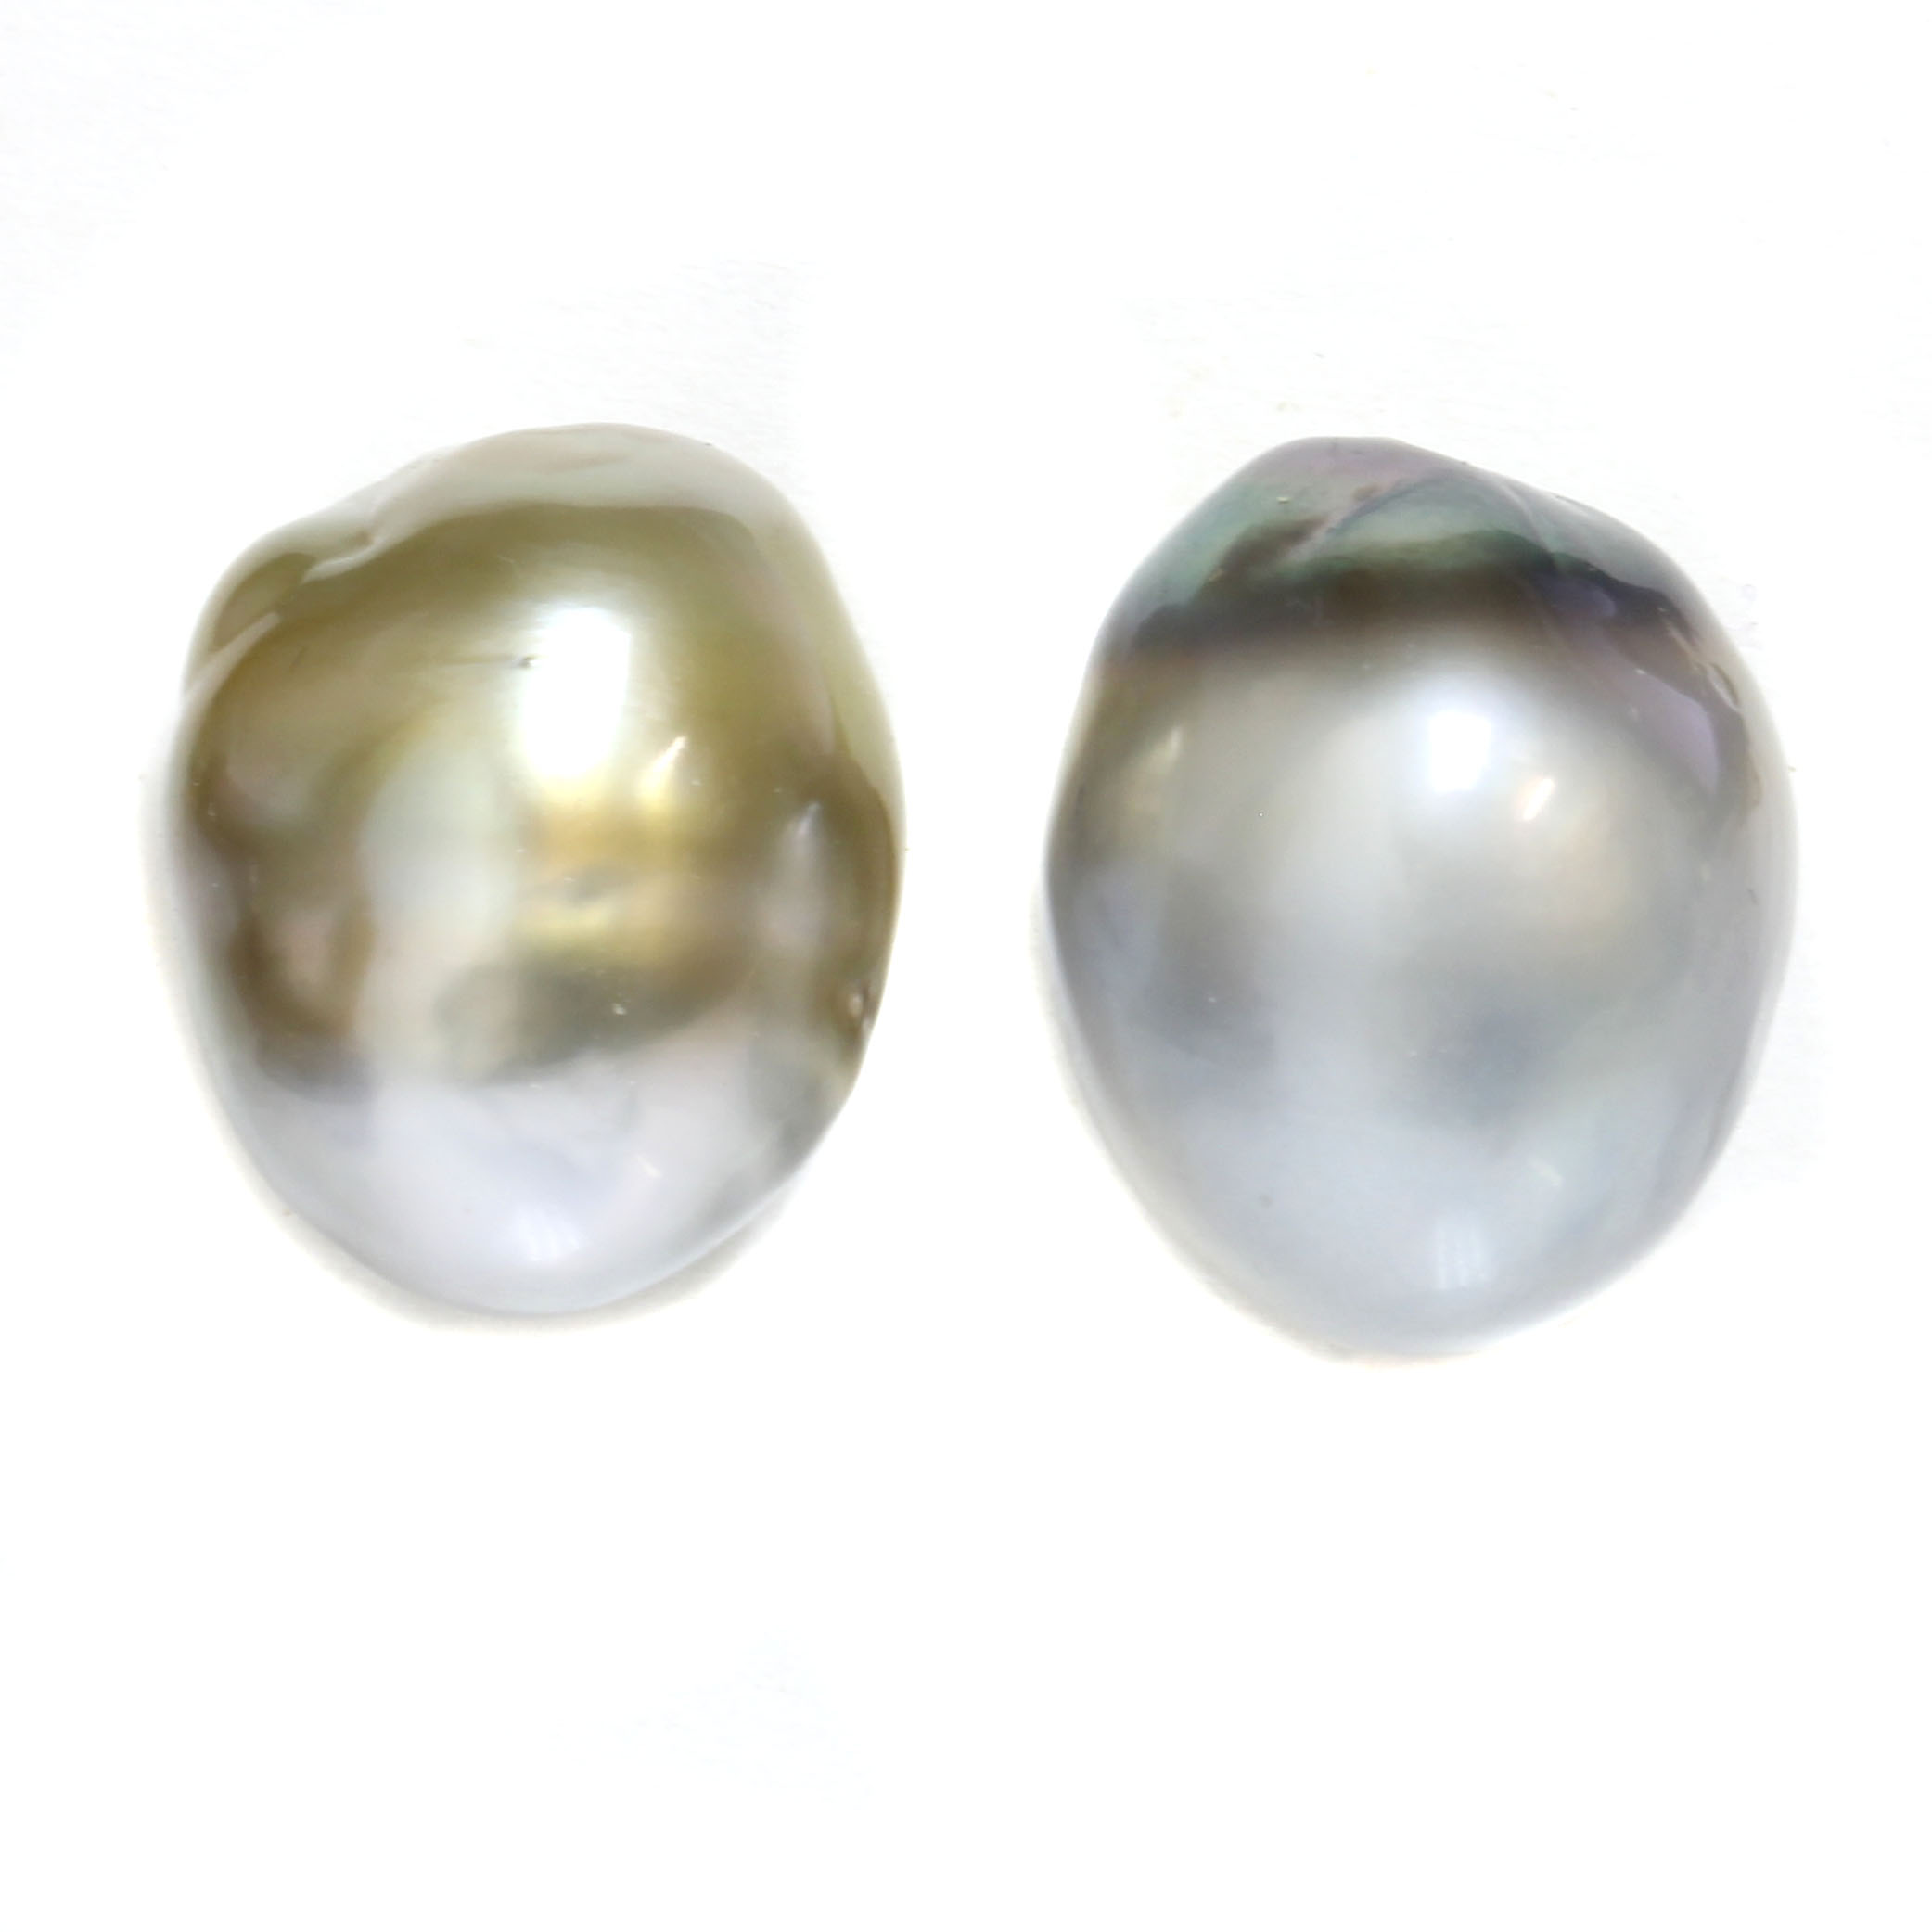 Tahitian Baroque Pearl Stud Earrings Are Absolutely Gorgeous And Unique These Studs Rare In Color Size Shape If You Love Statement Jewelry